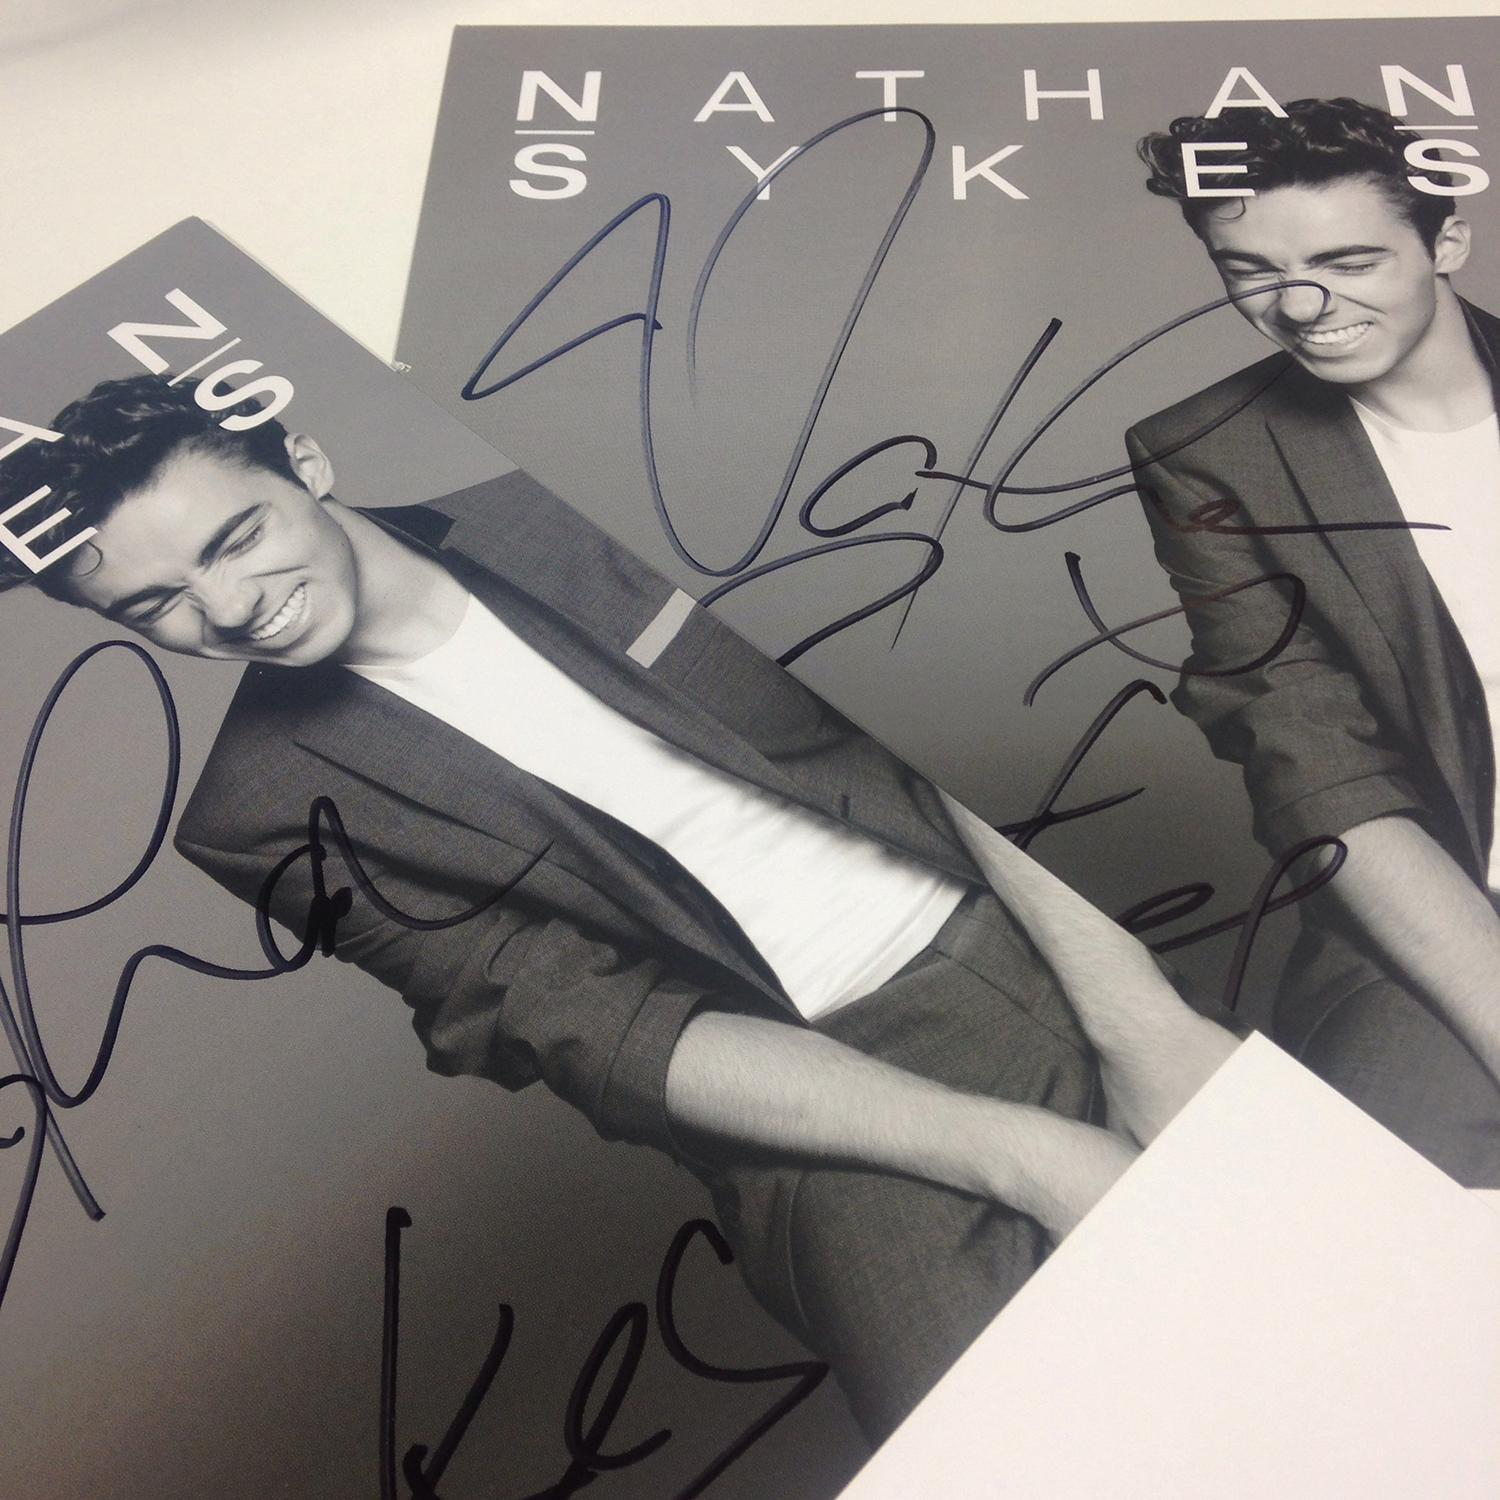 RT @NathanSykesHQ: Congrats @joannexclarke and @_IdkAbbie! You've bagged yourselves one of these as signed by MR @nathansykes http://t.co/Q…